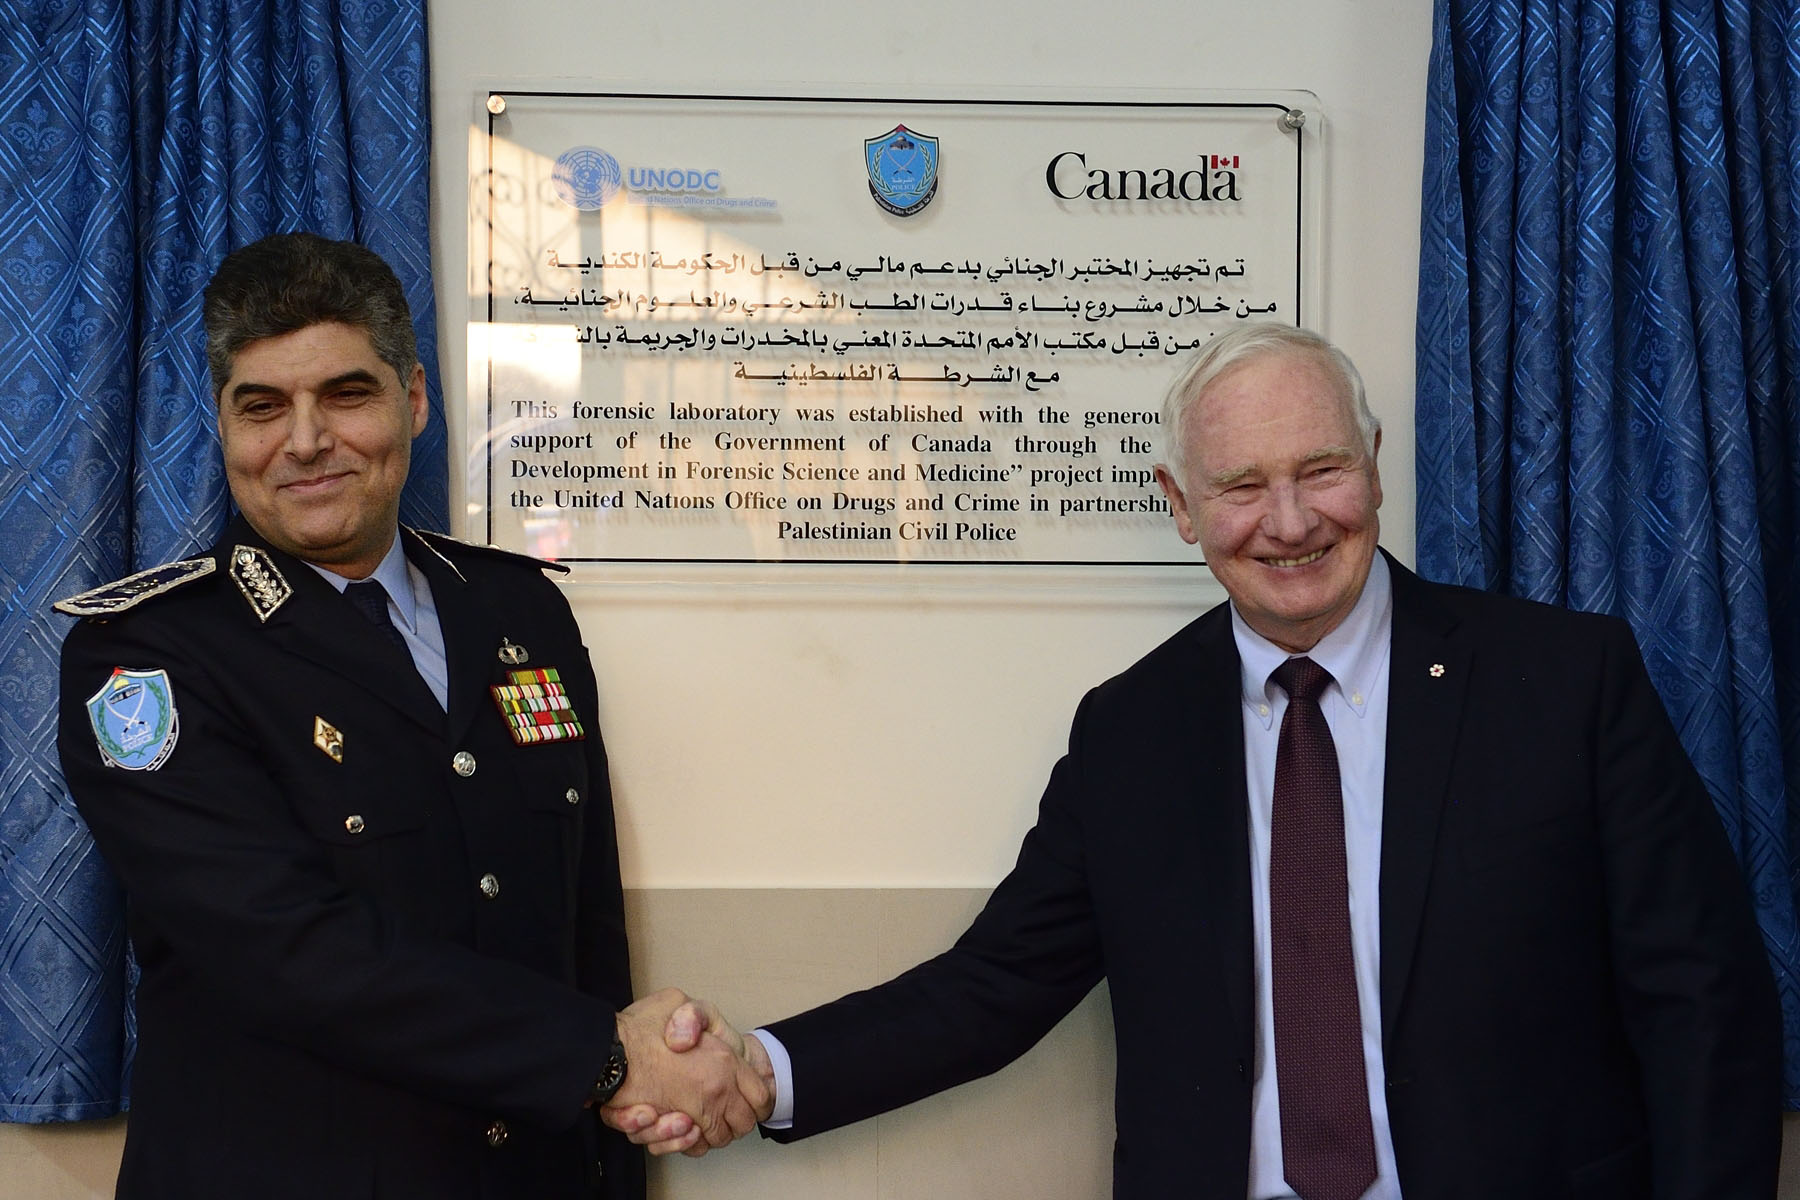 Later that afternoon, the Governor General attended the inauguration of a forensic science laboratory, supported by Canadian funding.